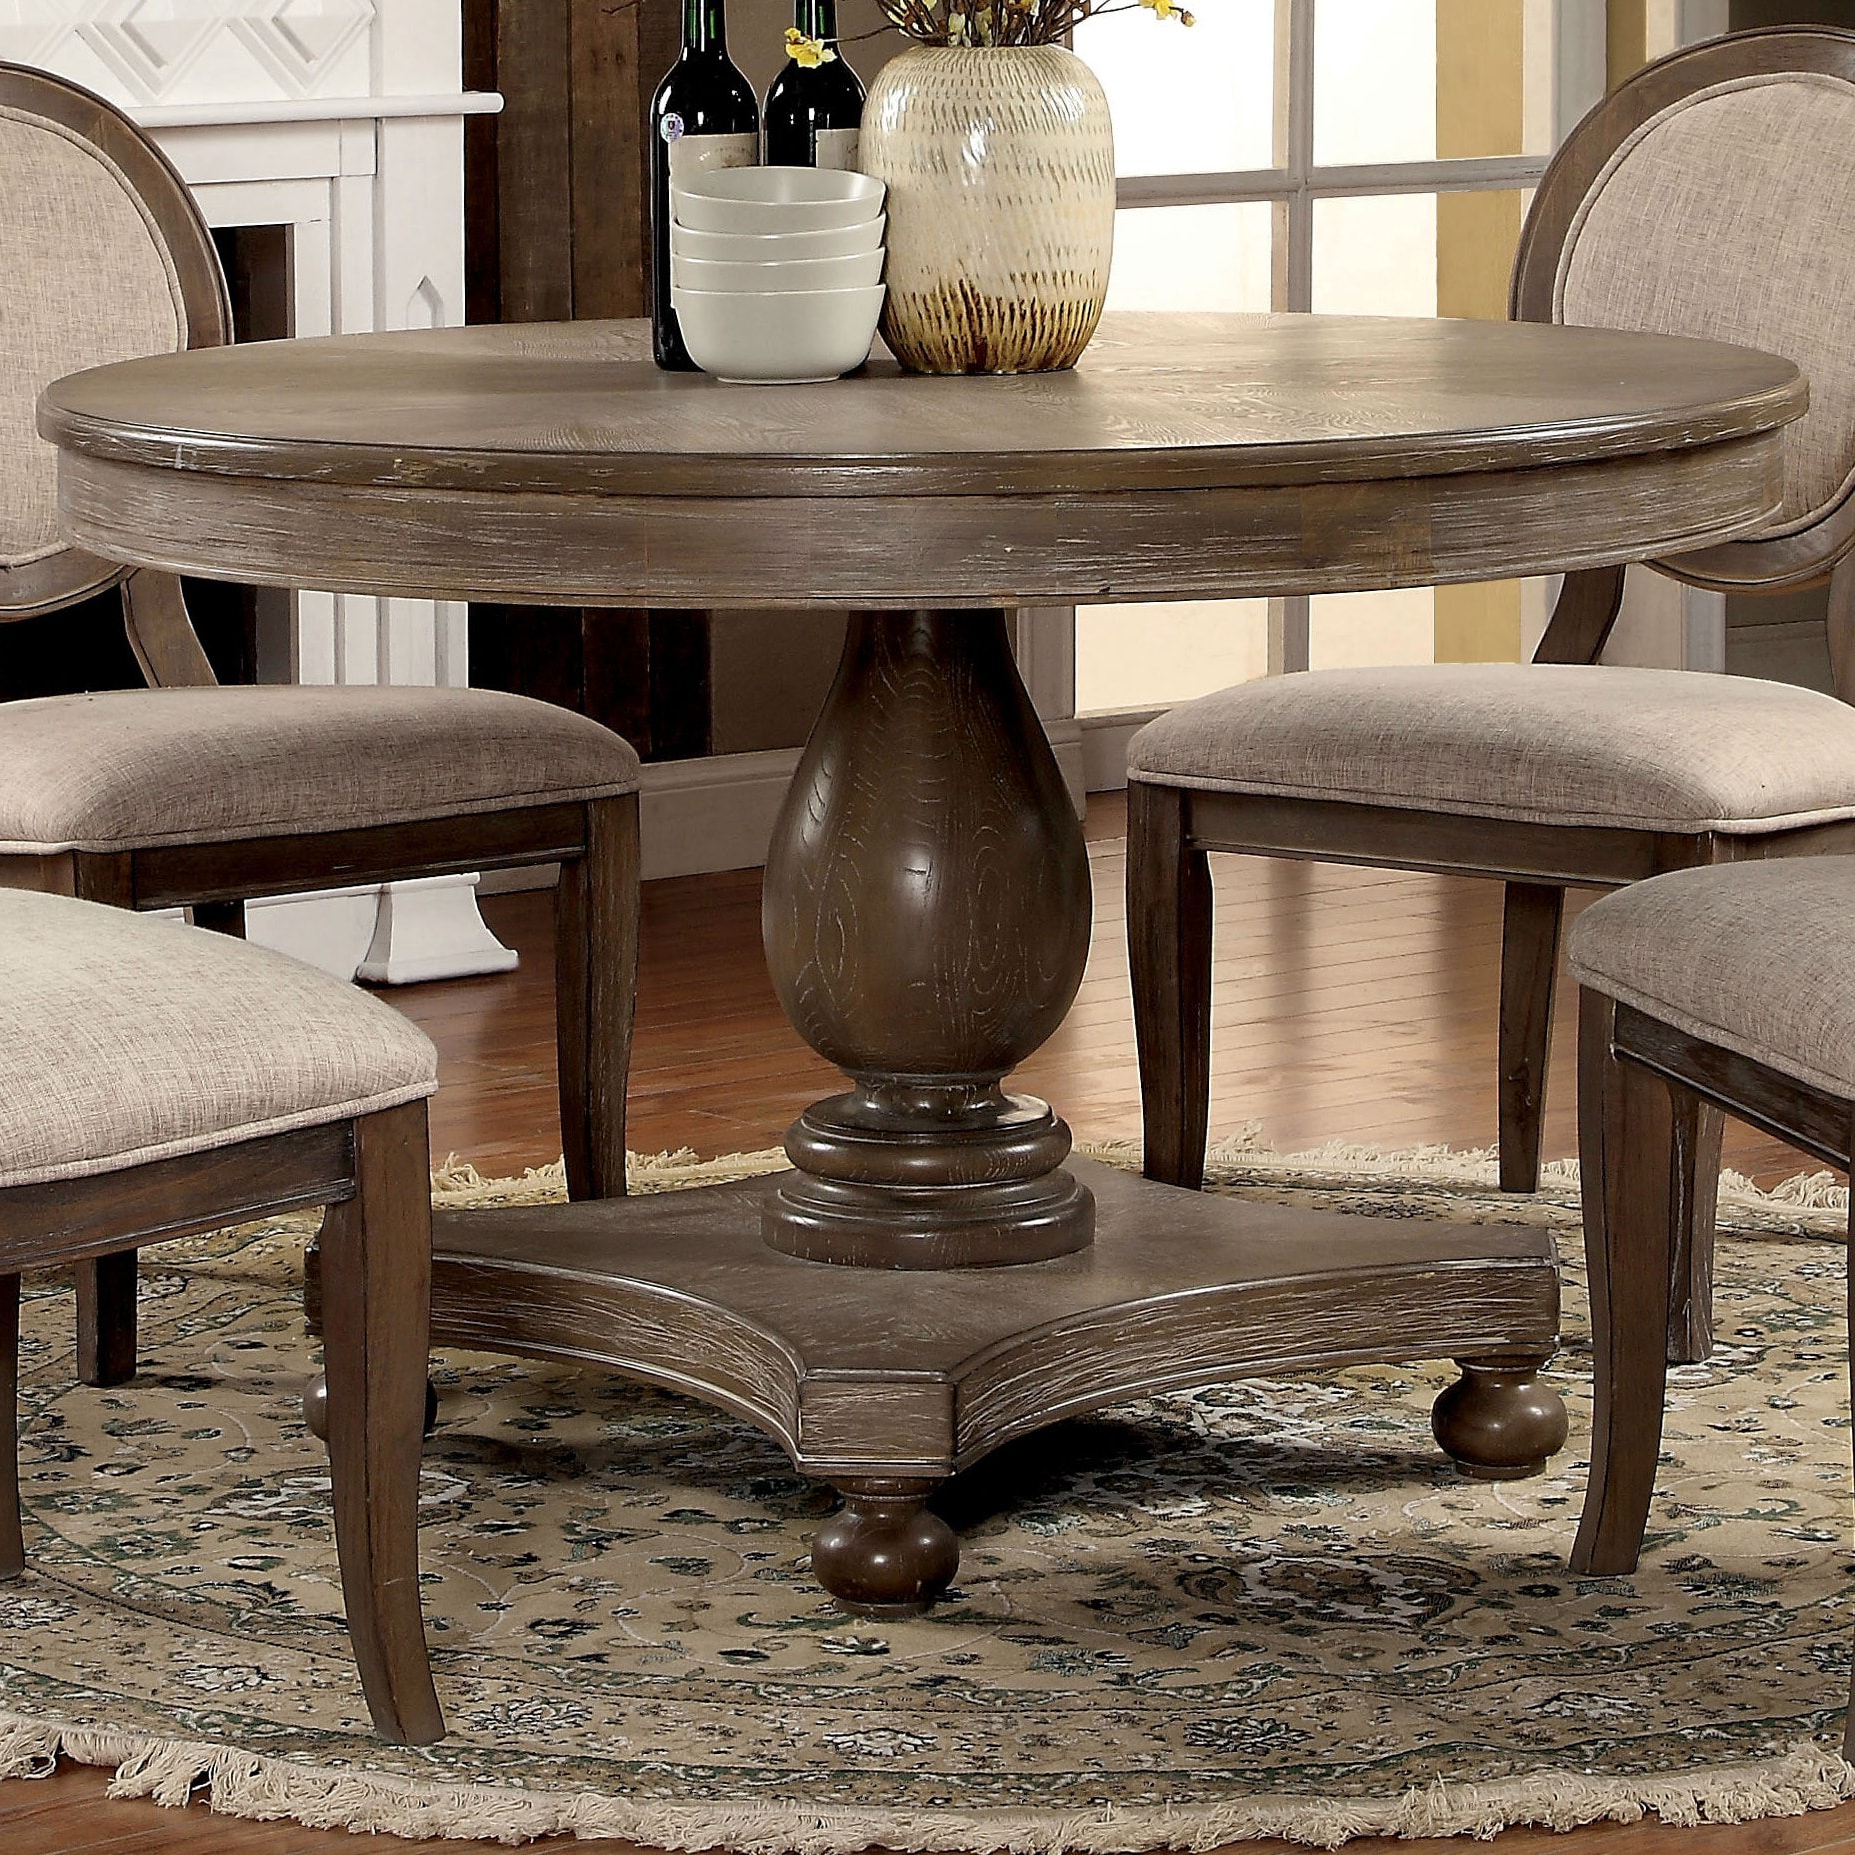 Overstock: Online Shopping – Bedding, Furniture With Regard To Most Current Tabor 48'' Pedestal Dining Tables (View 15 of 20)